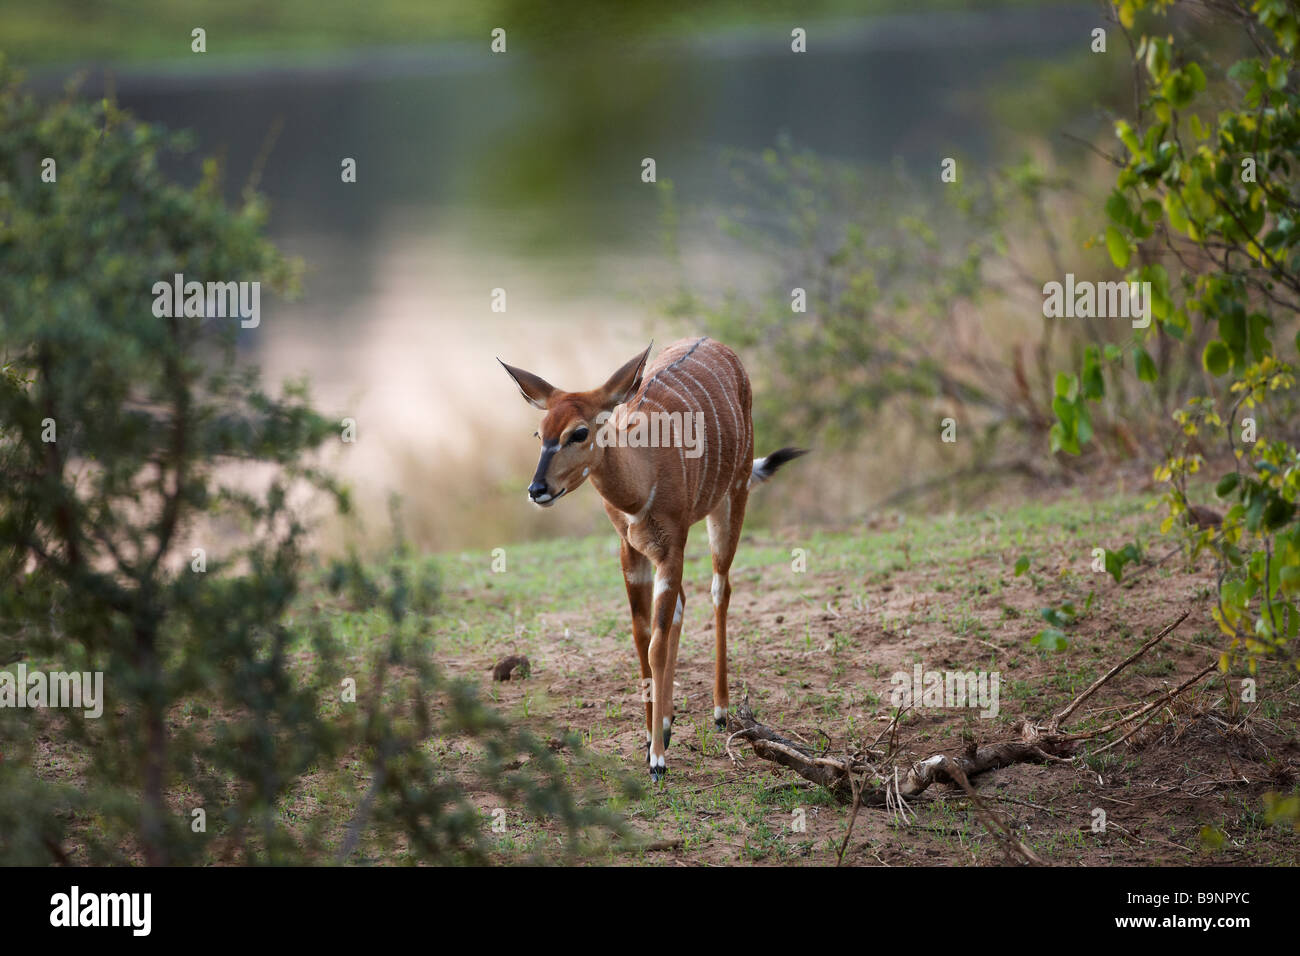 nyala ewe in the bush by a river, Kruger national Park, South Africa - Stock Image